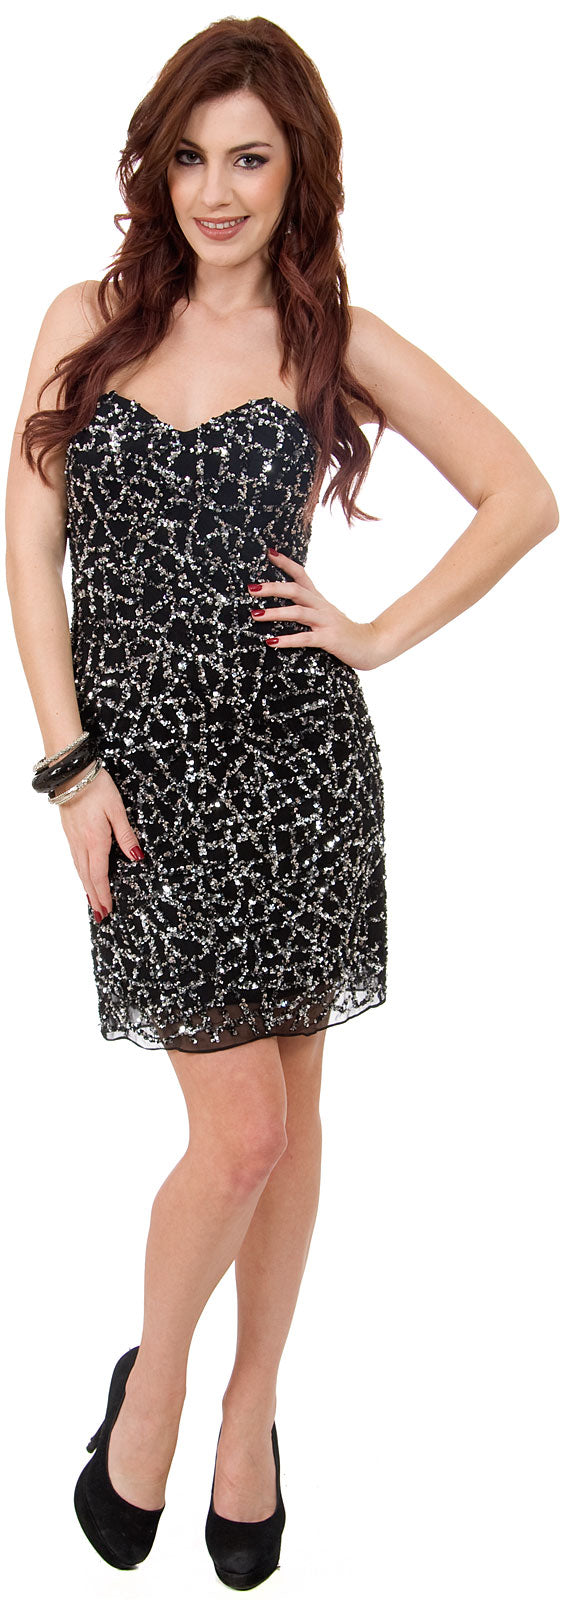 Image of Strapless Sequined Short Prom & Party Dress. in Black/Silver